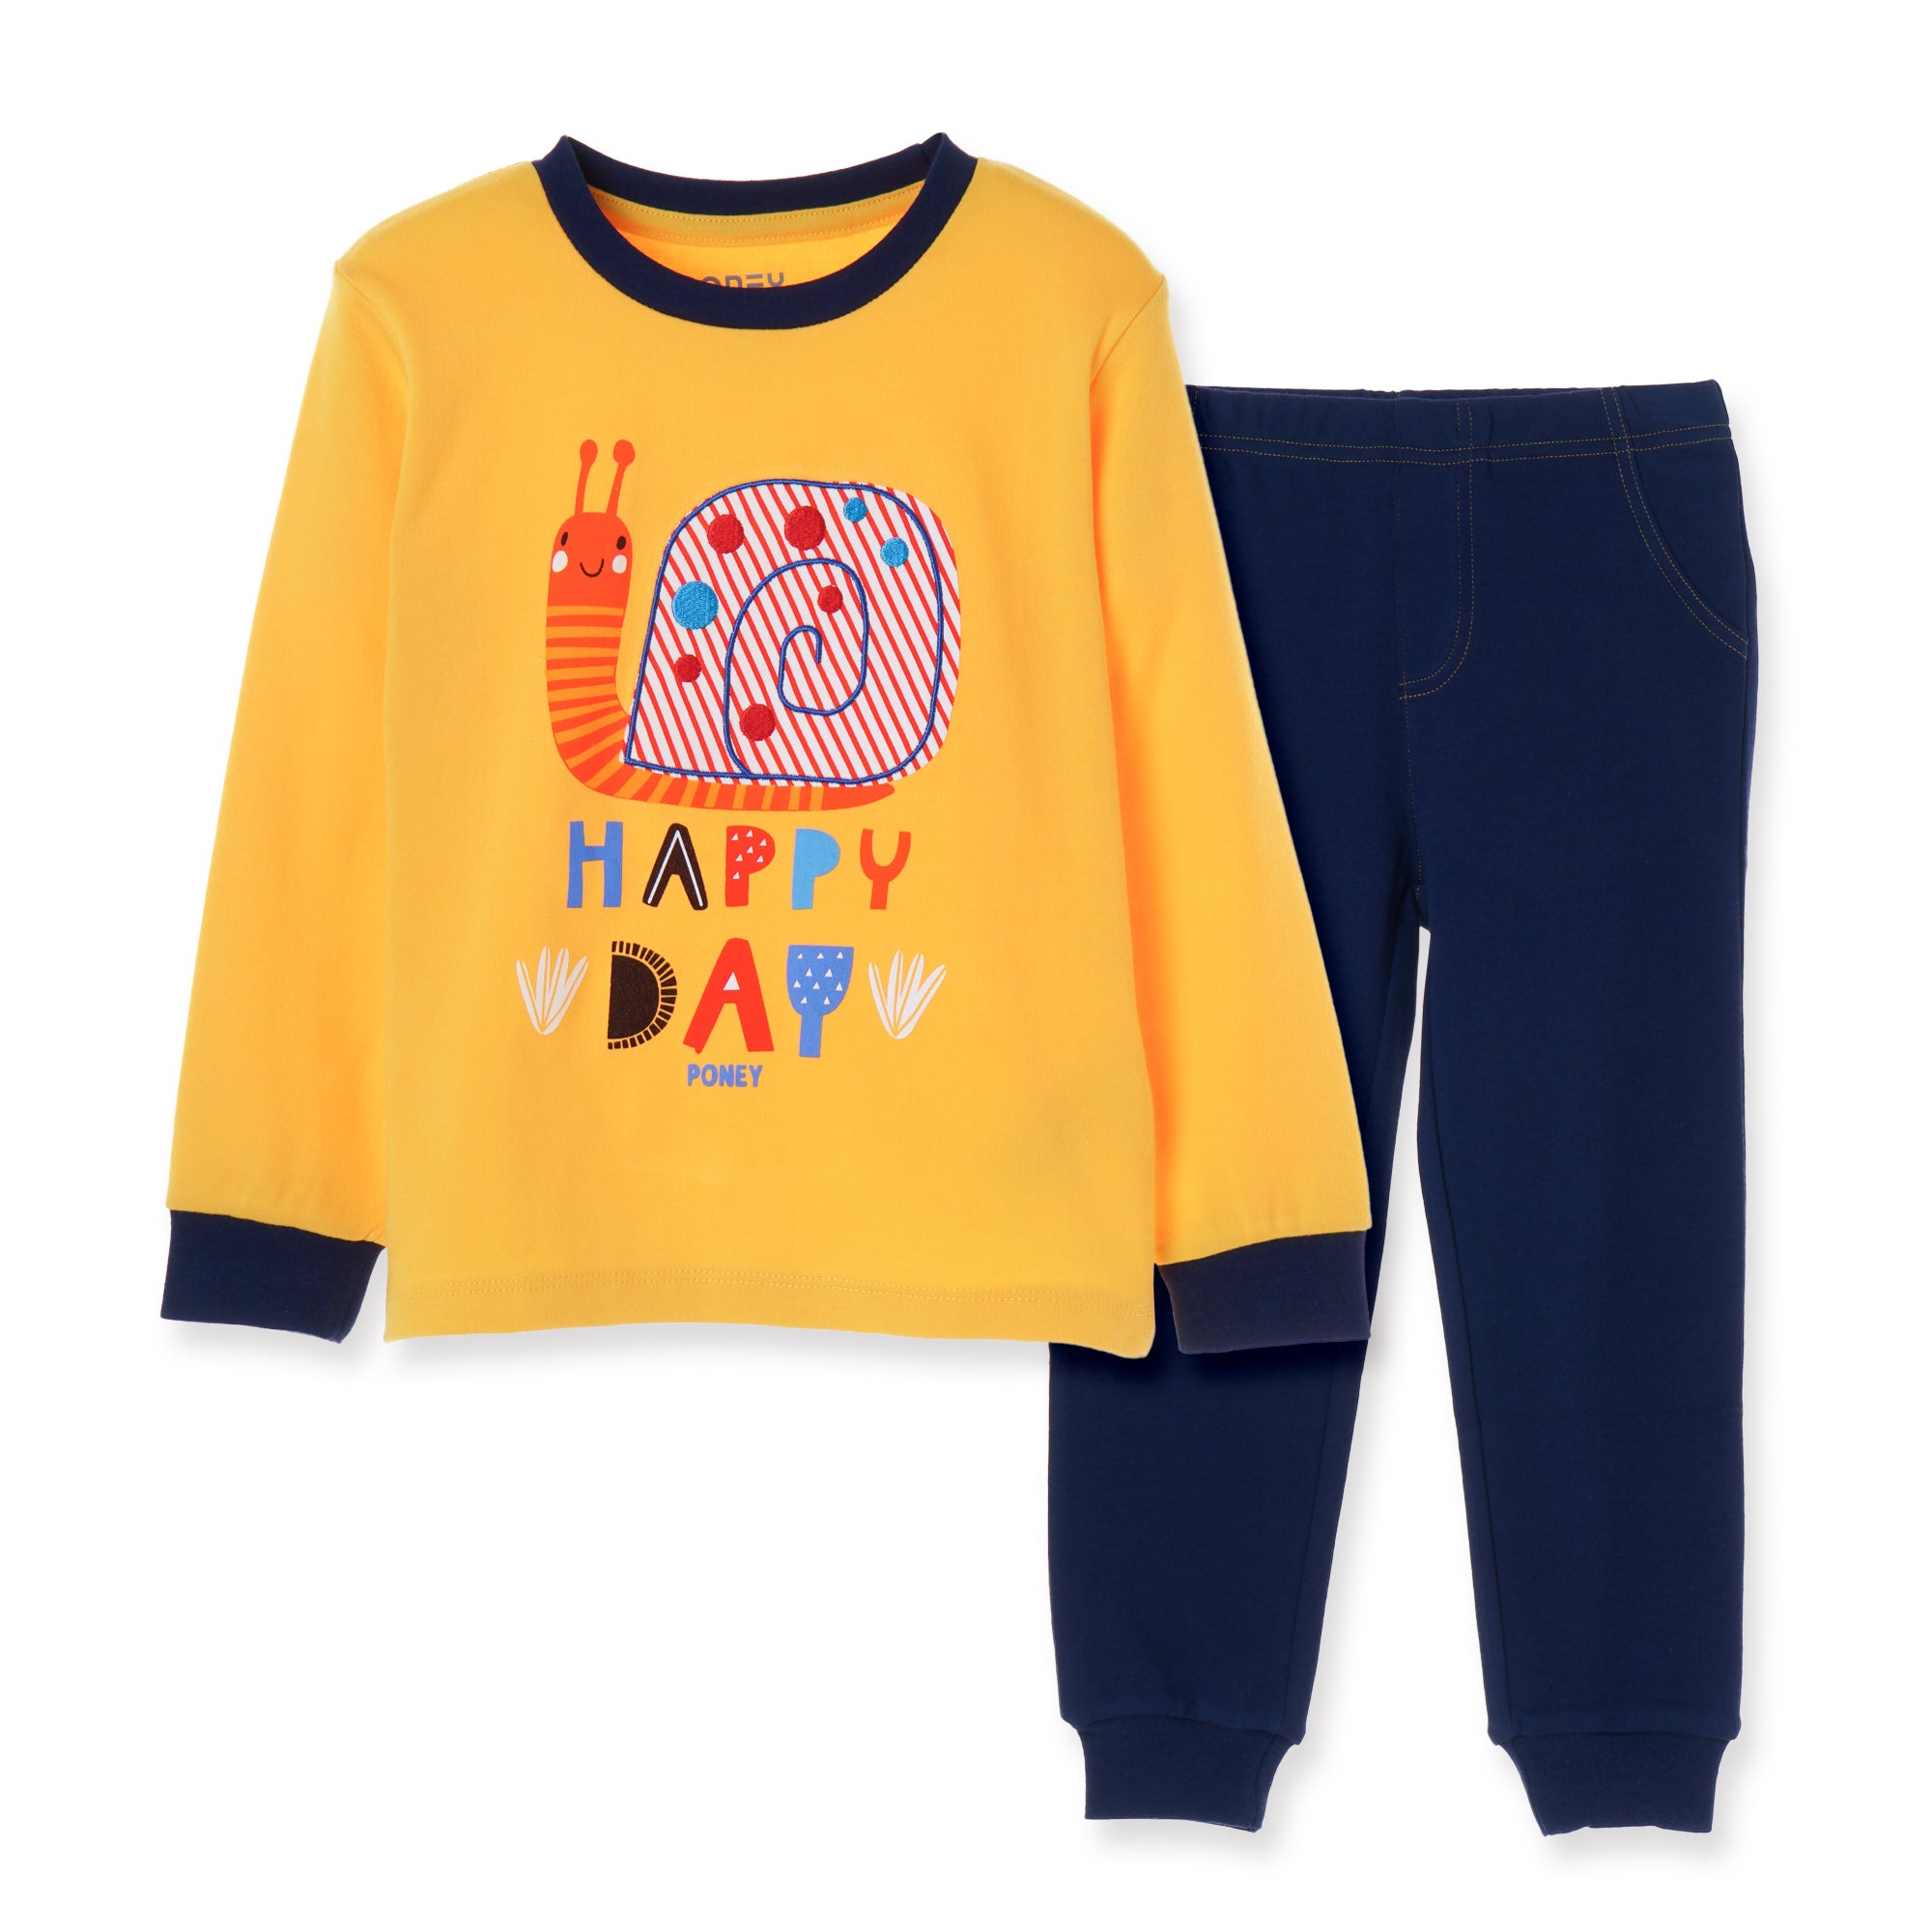 Poney Boys Loungewear PLB23